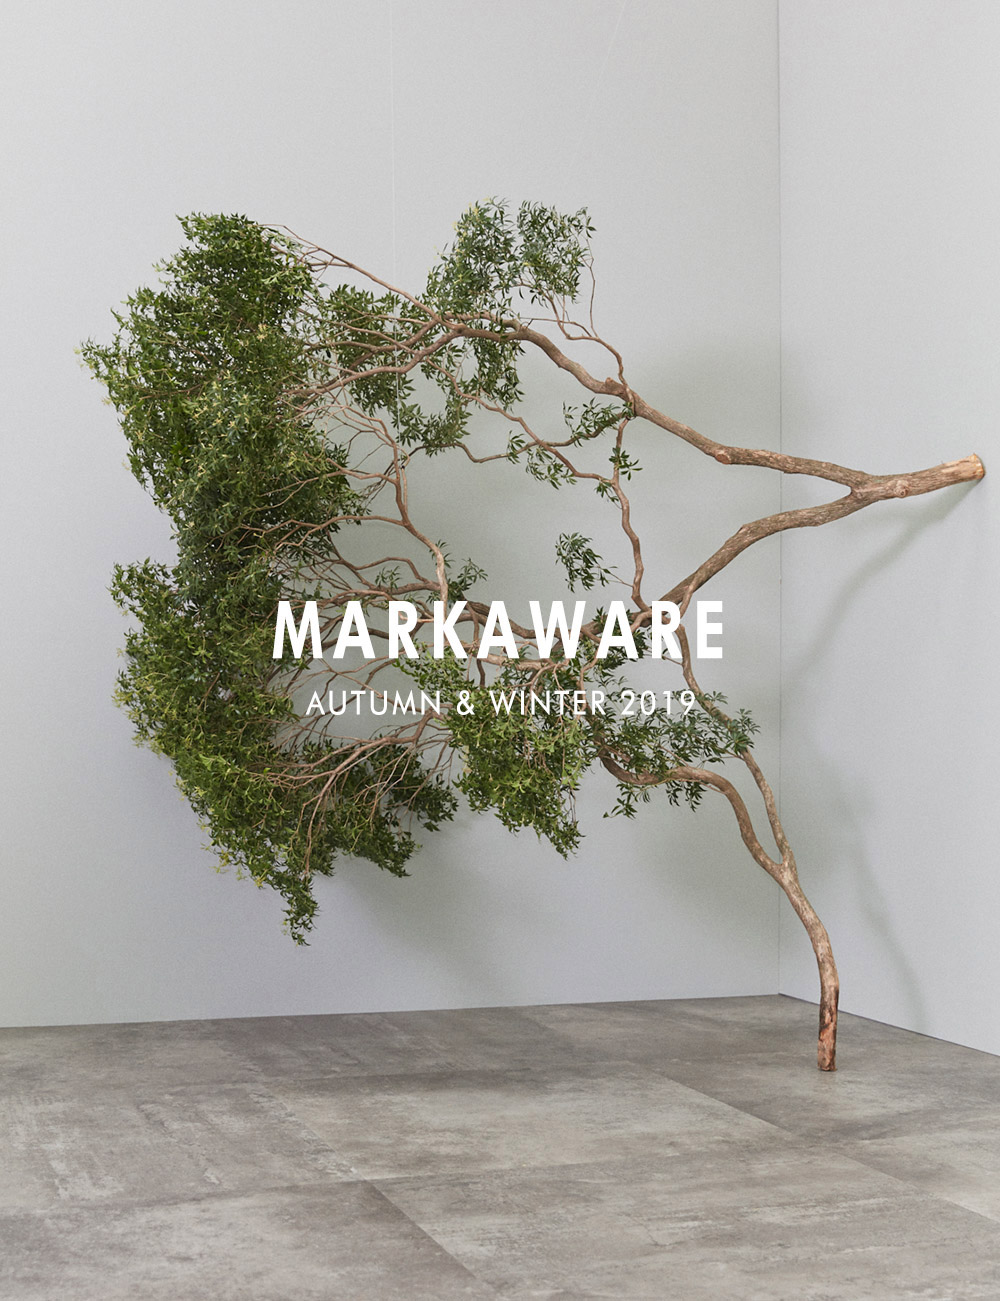 MARKAWARE 2019 FALL/WINTER